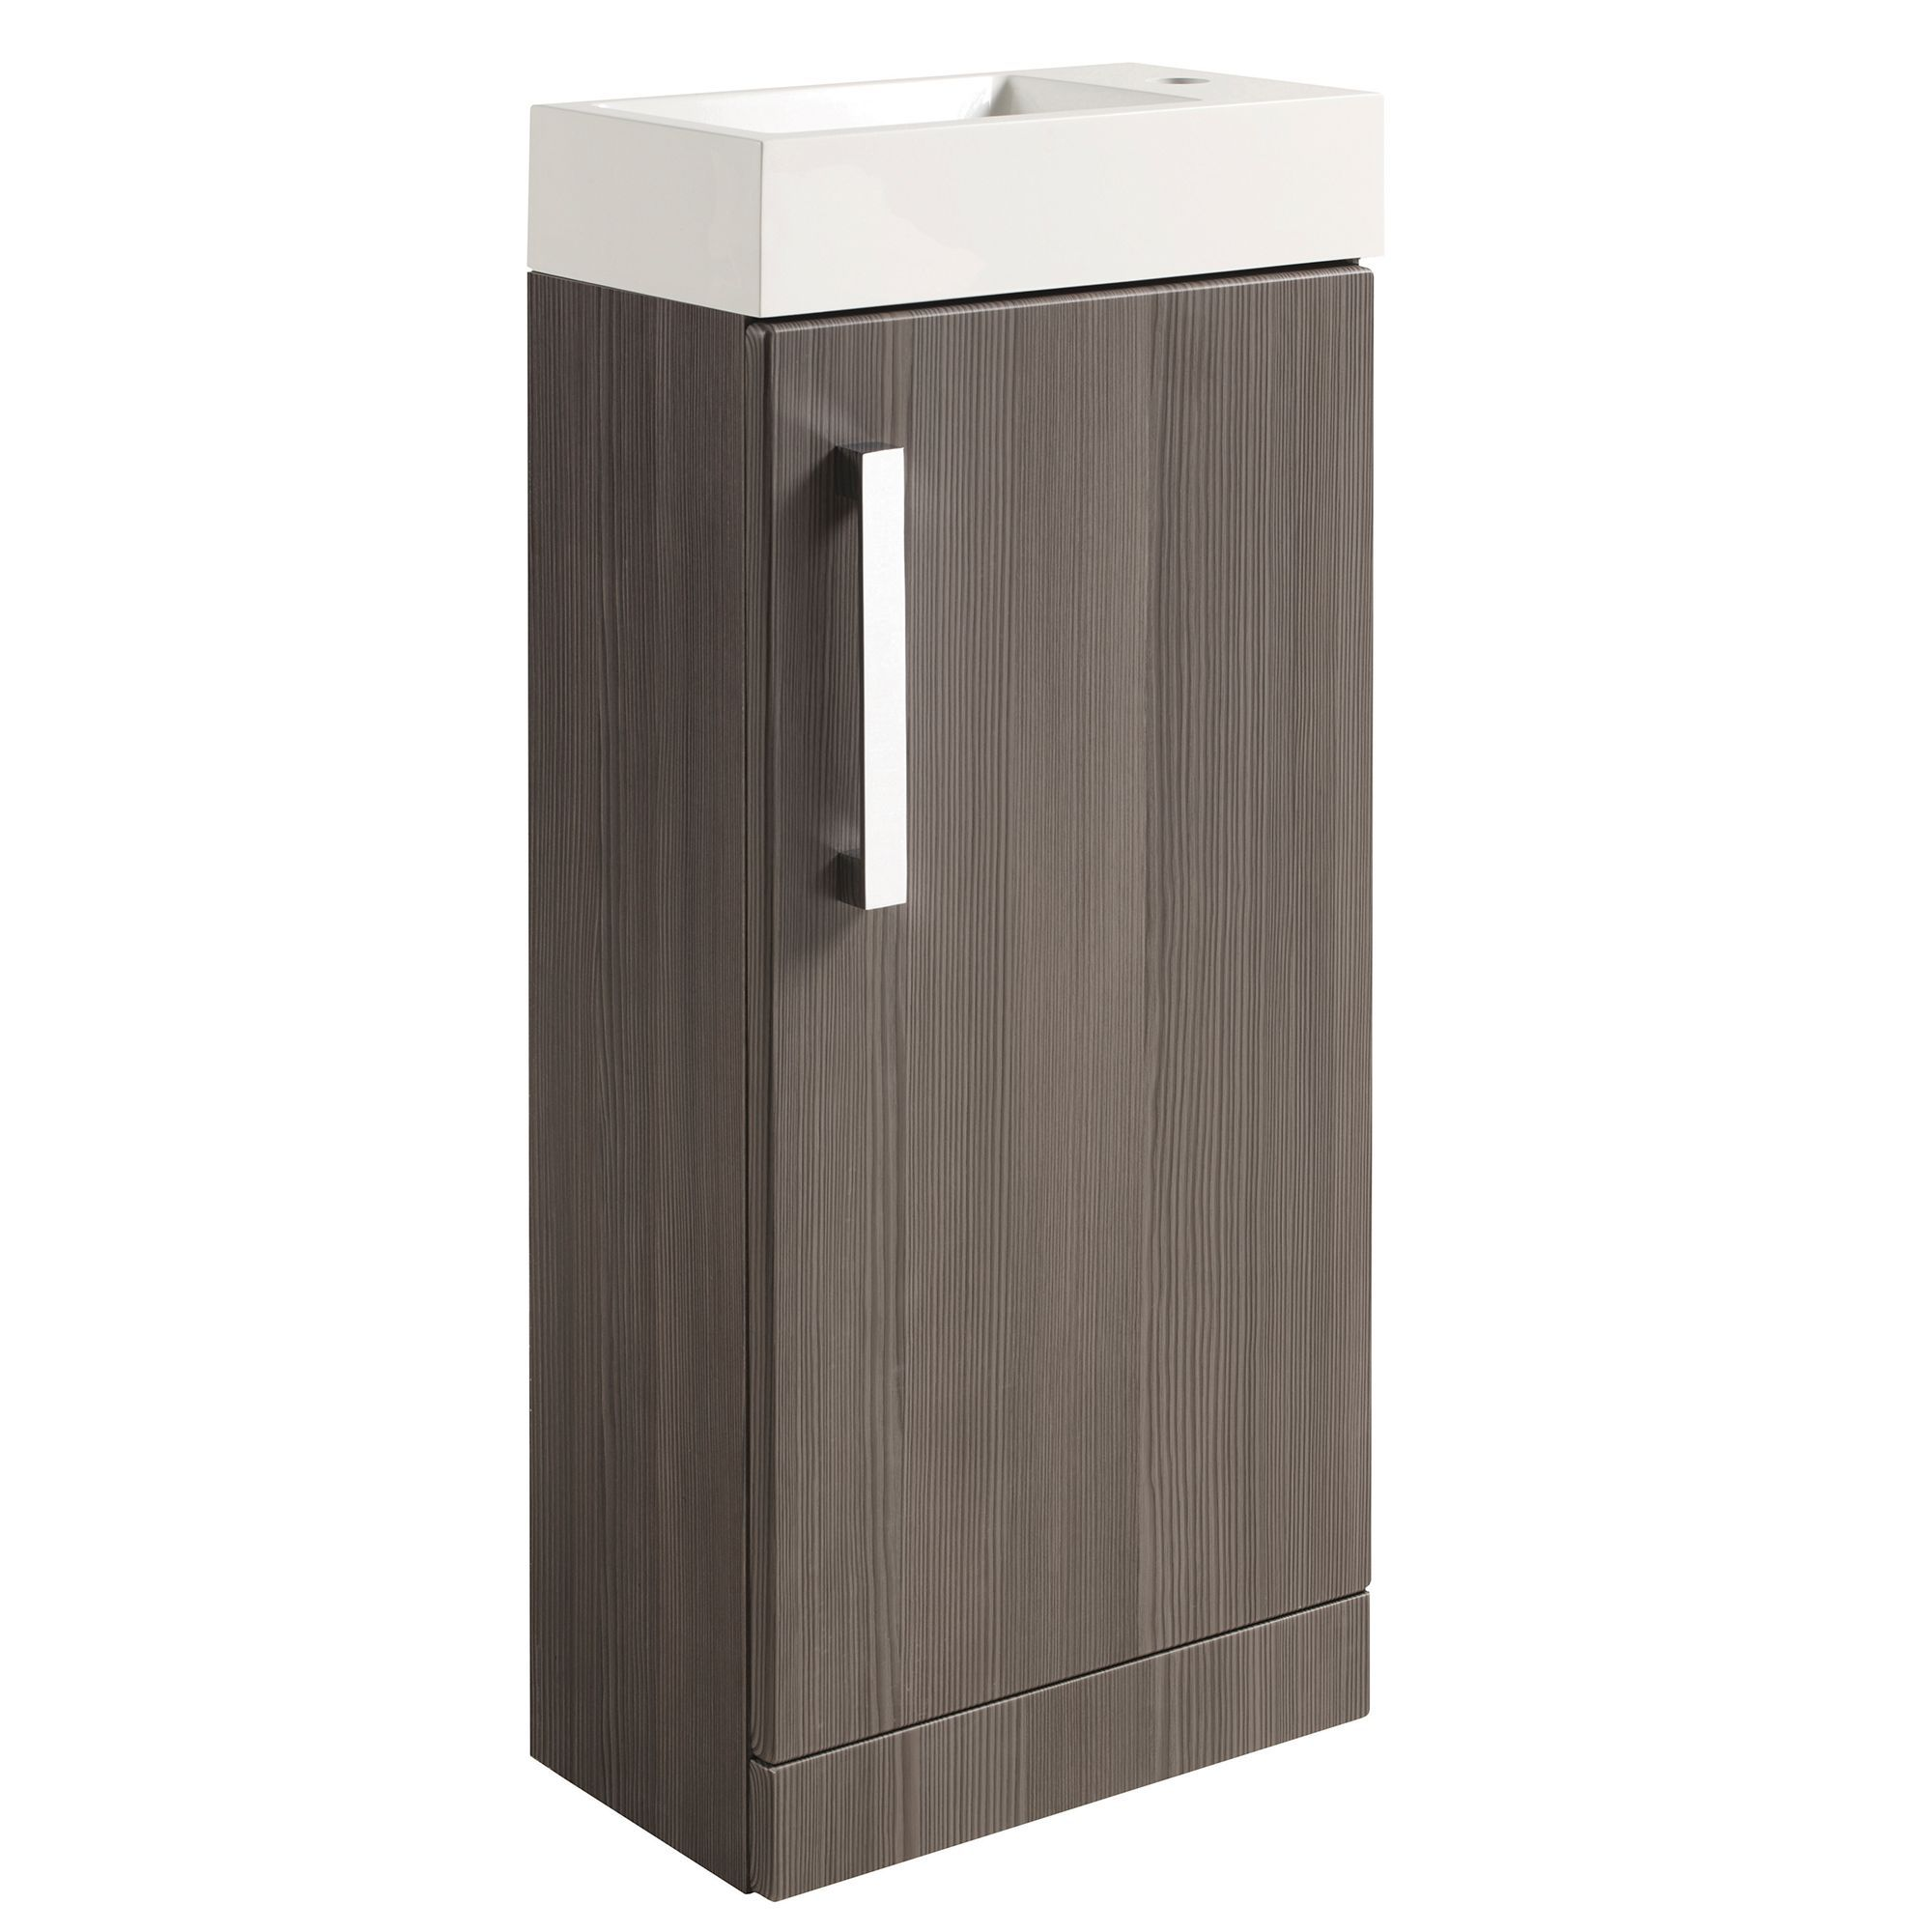 Bathroom Cabinets Uk Bq Cooke Lewis Ardeche Wood Effect Bodega Grey Vanity Unit